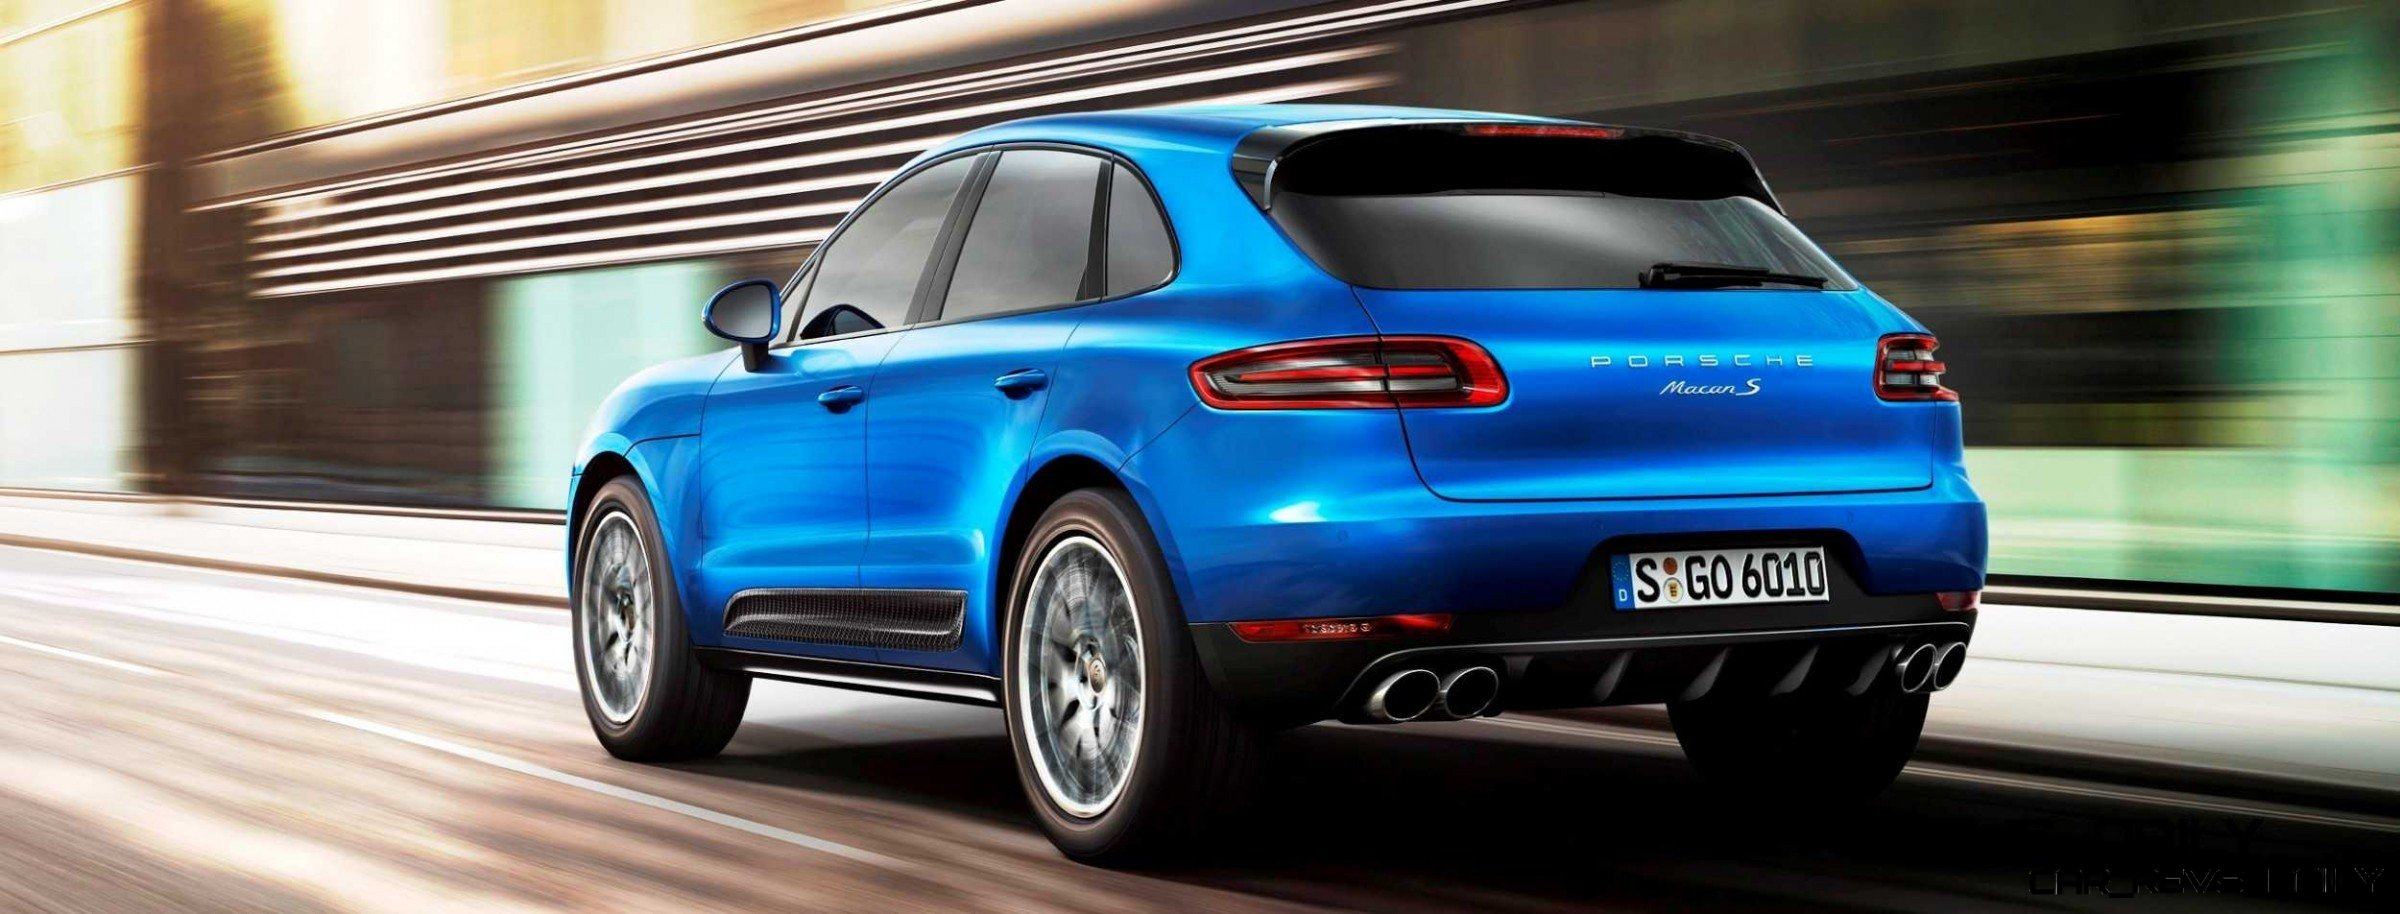 2014 Porsche Macan Turbo and Macan S - Official Debut Photos3